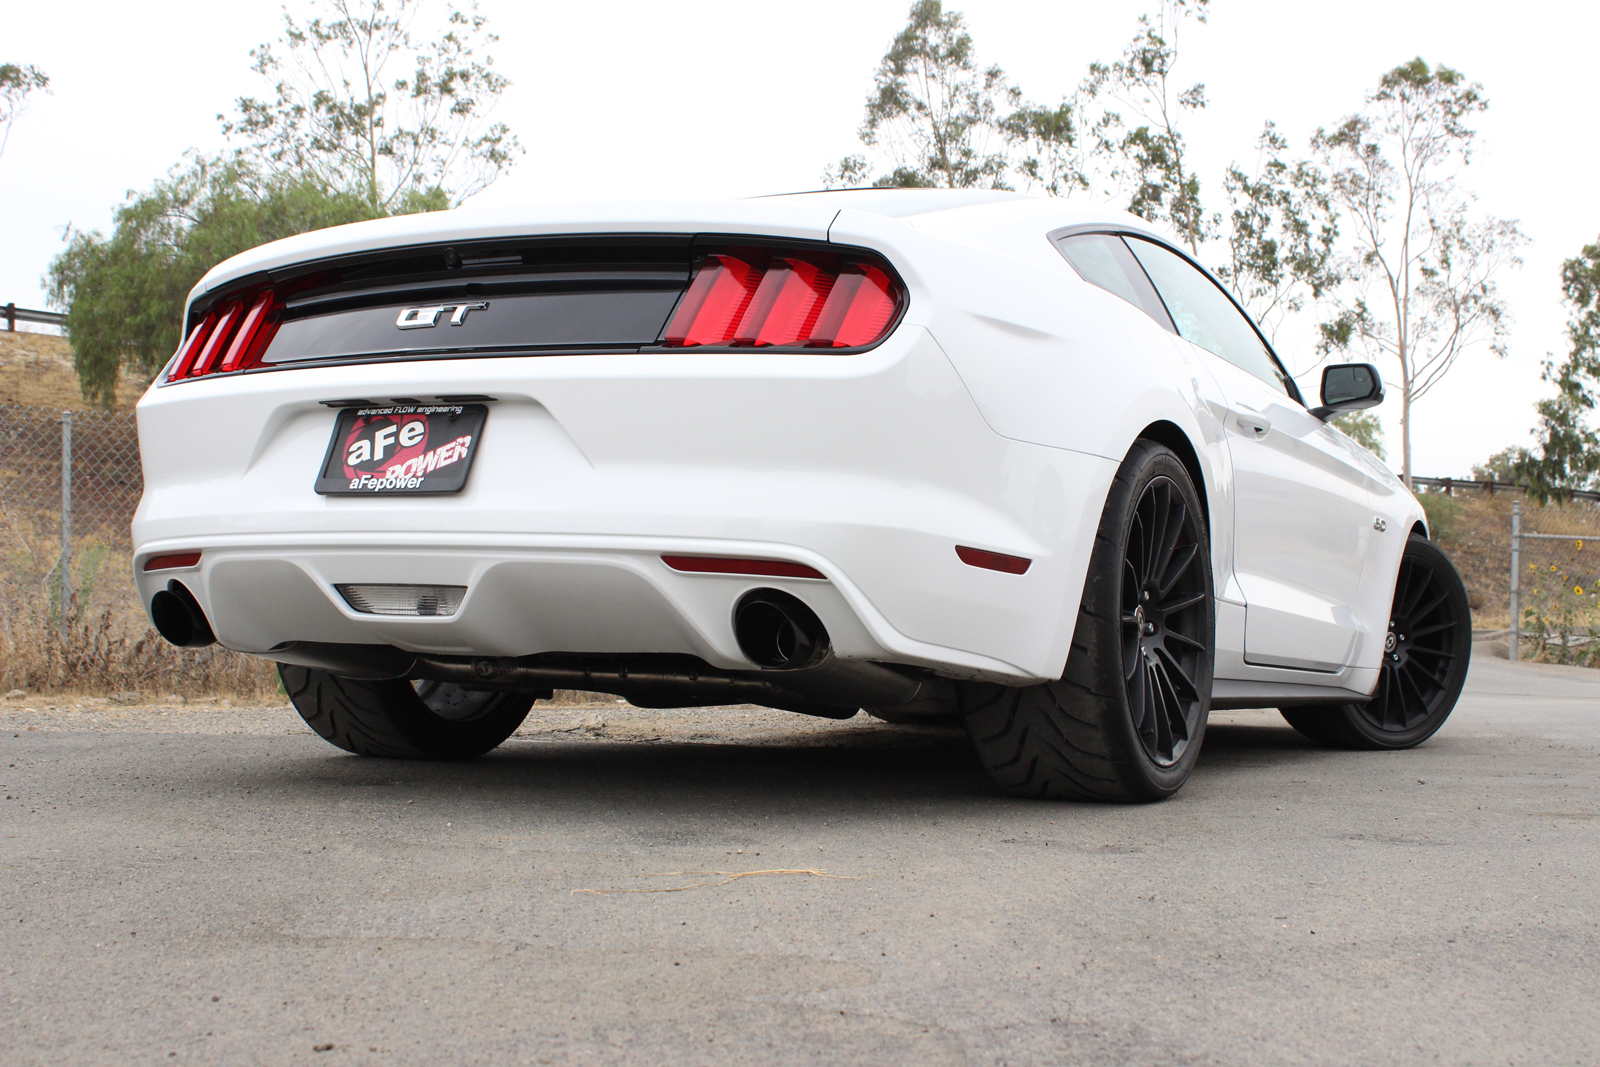 2015-aFe-Ford-Mustang-GT-S5